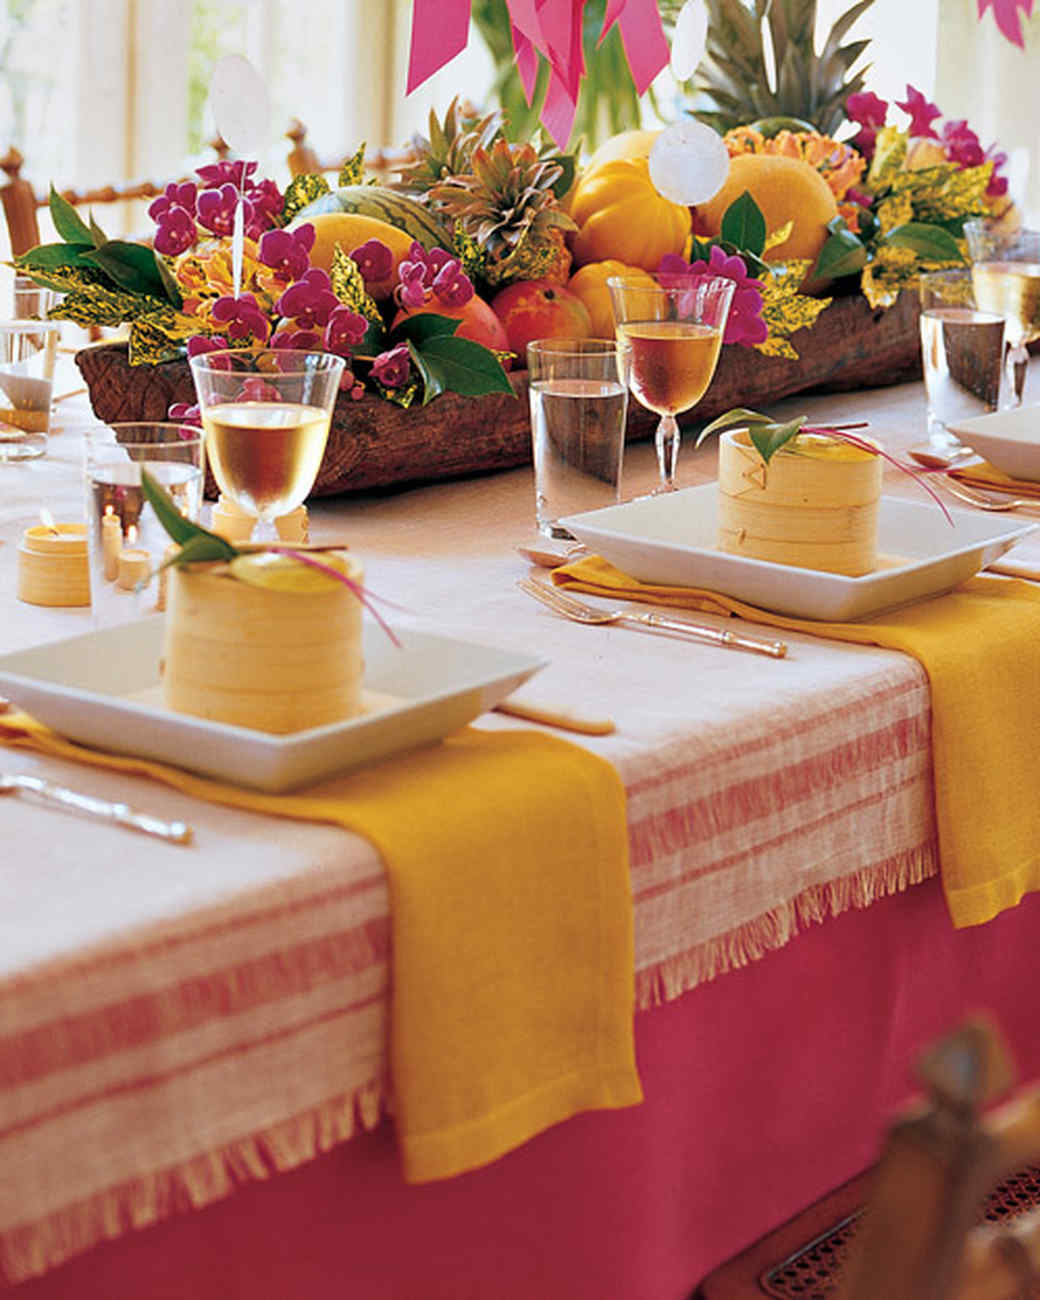 Tropical Fruit Centerpiece & Summer Centerpieces for Entertaining | Martha Stewart